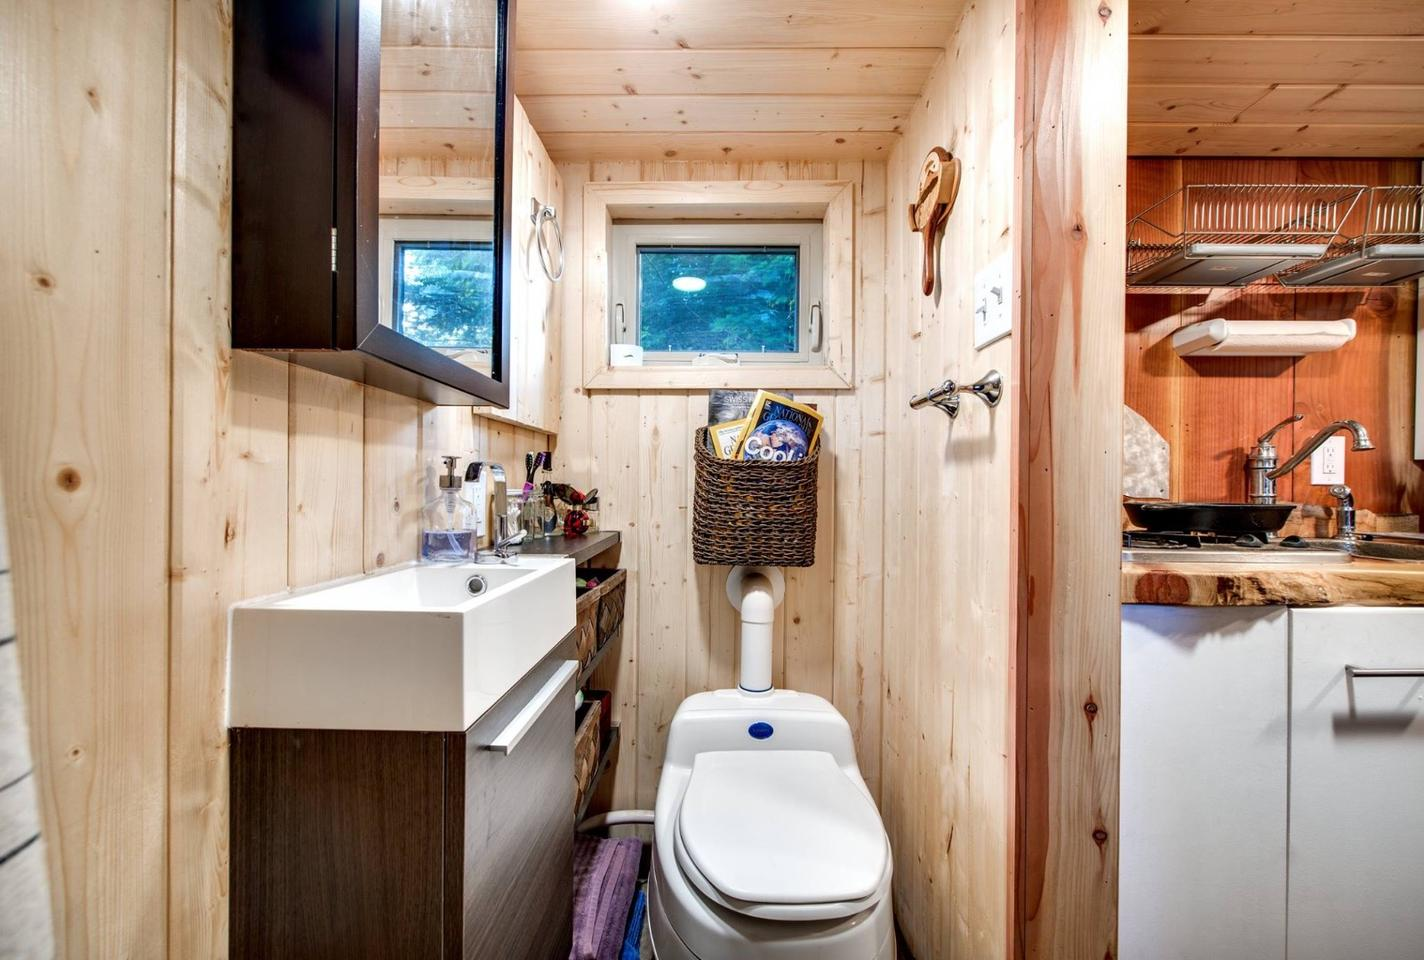 The bathroom includes a composting toilet